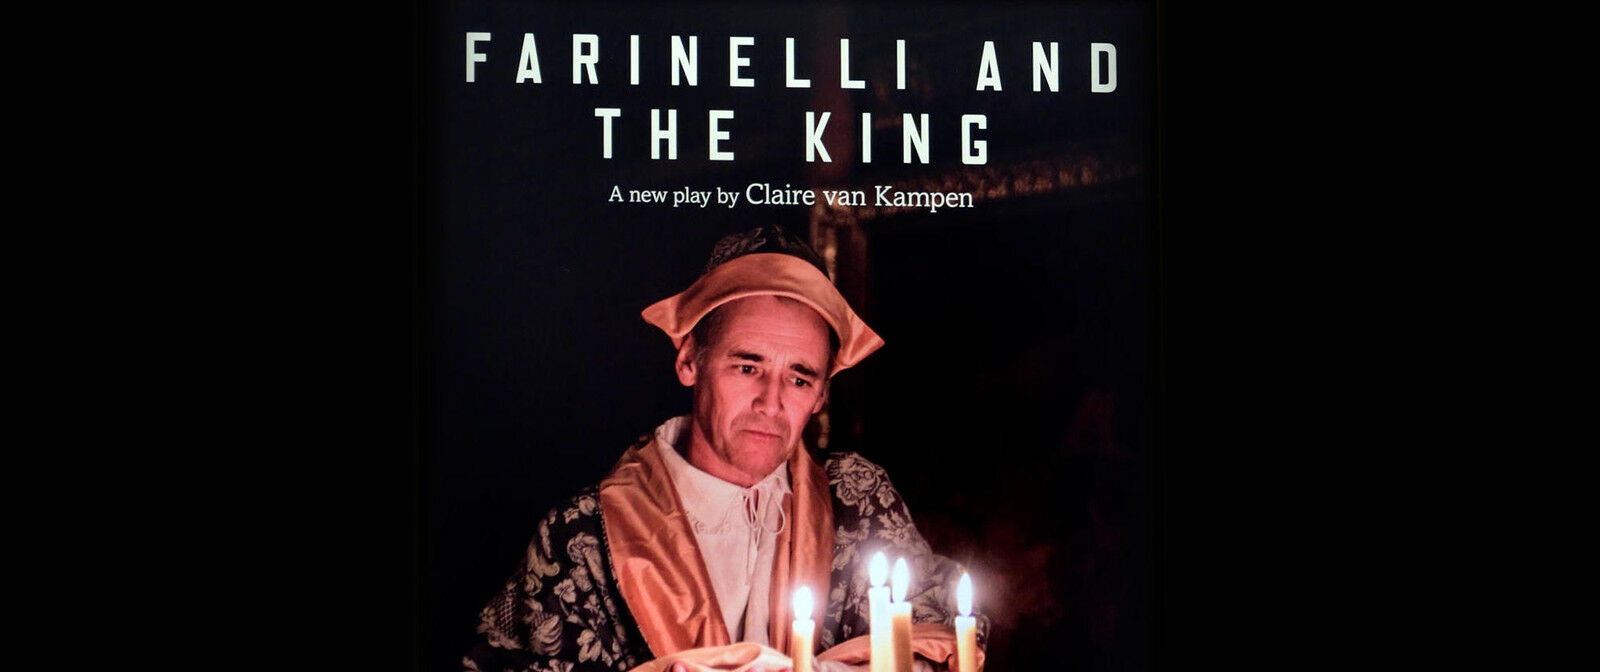 Farinelli and the King New York   New York, NY   Belasco Theatre   December 9, 2017